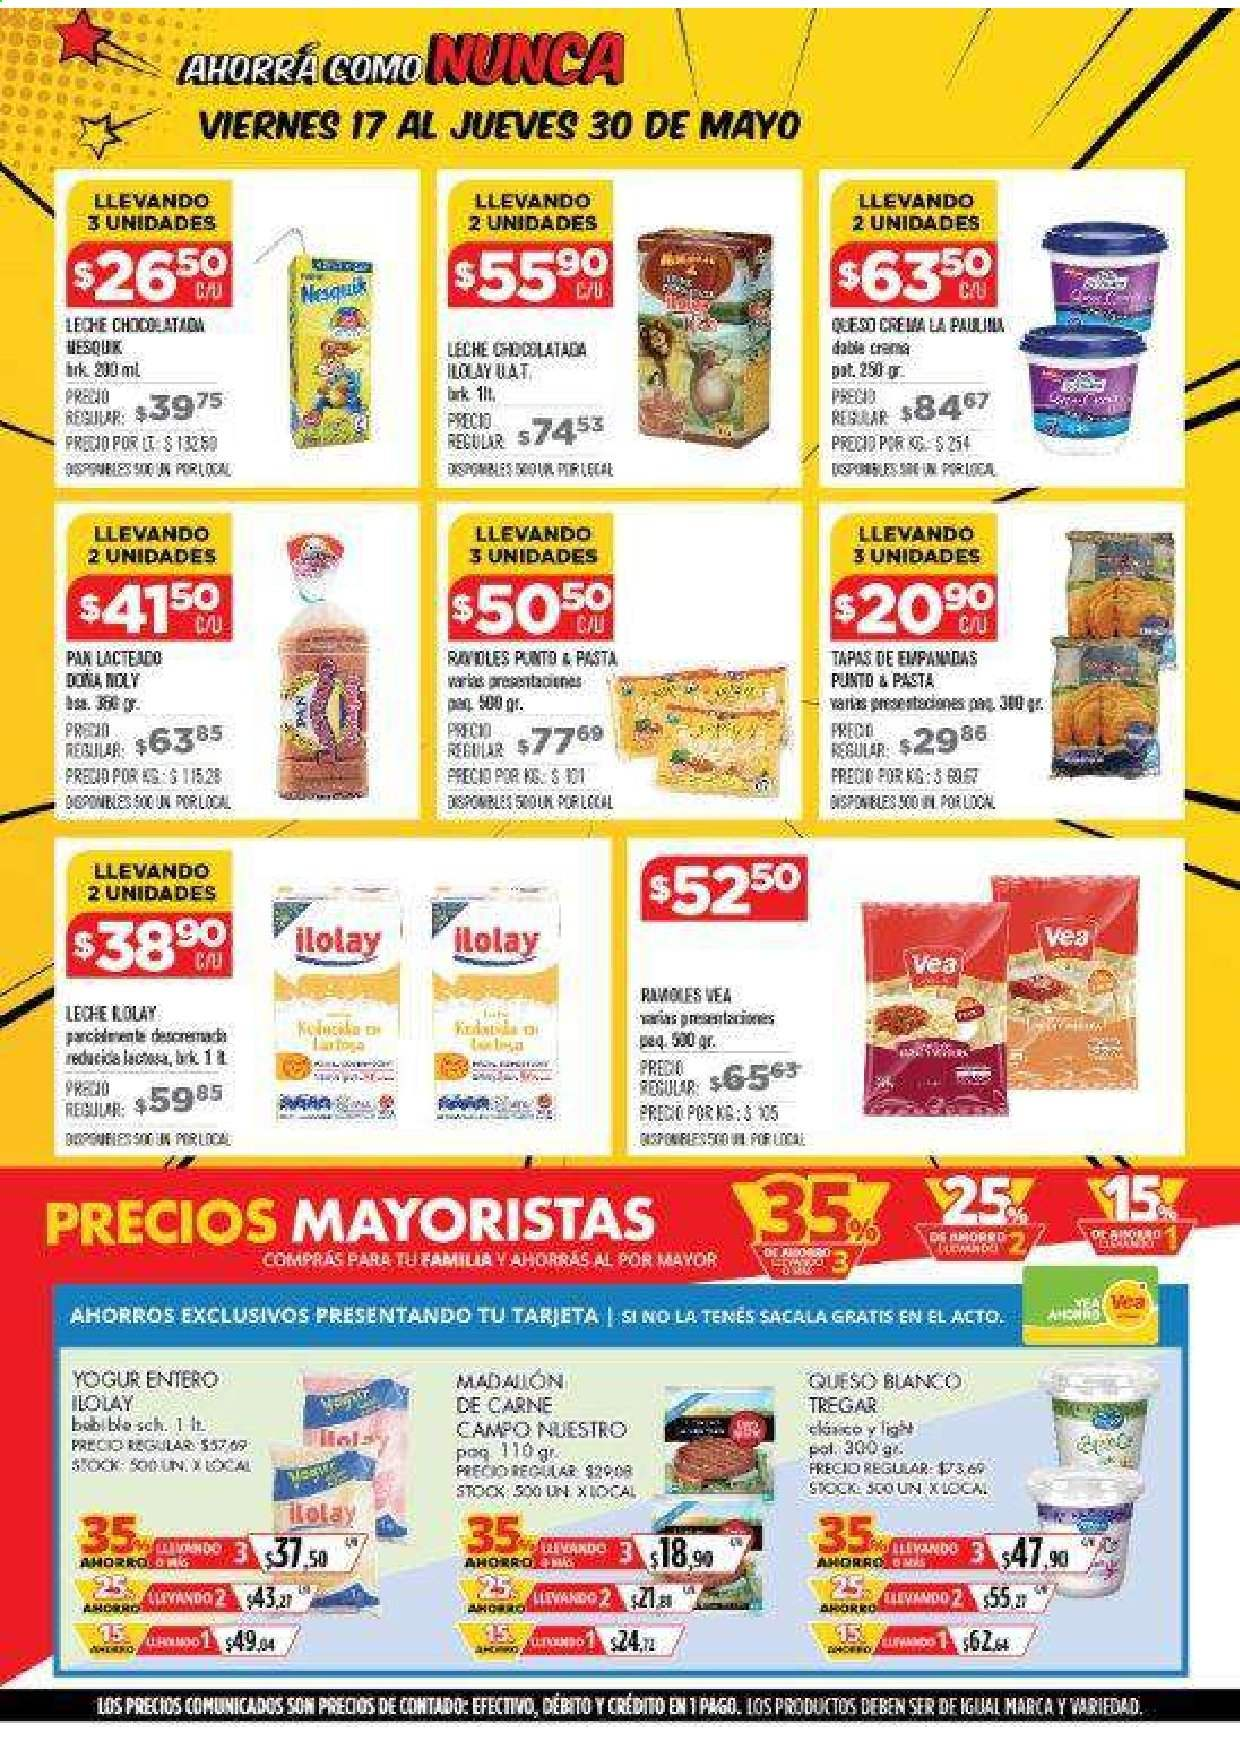 Folleto actual Vea - 17.5.2019 - 30.5.2019 - Ventas - queso, pasta, yogur, leche, carne. Página 2.